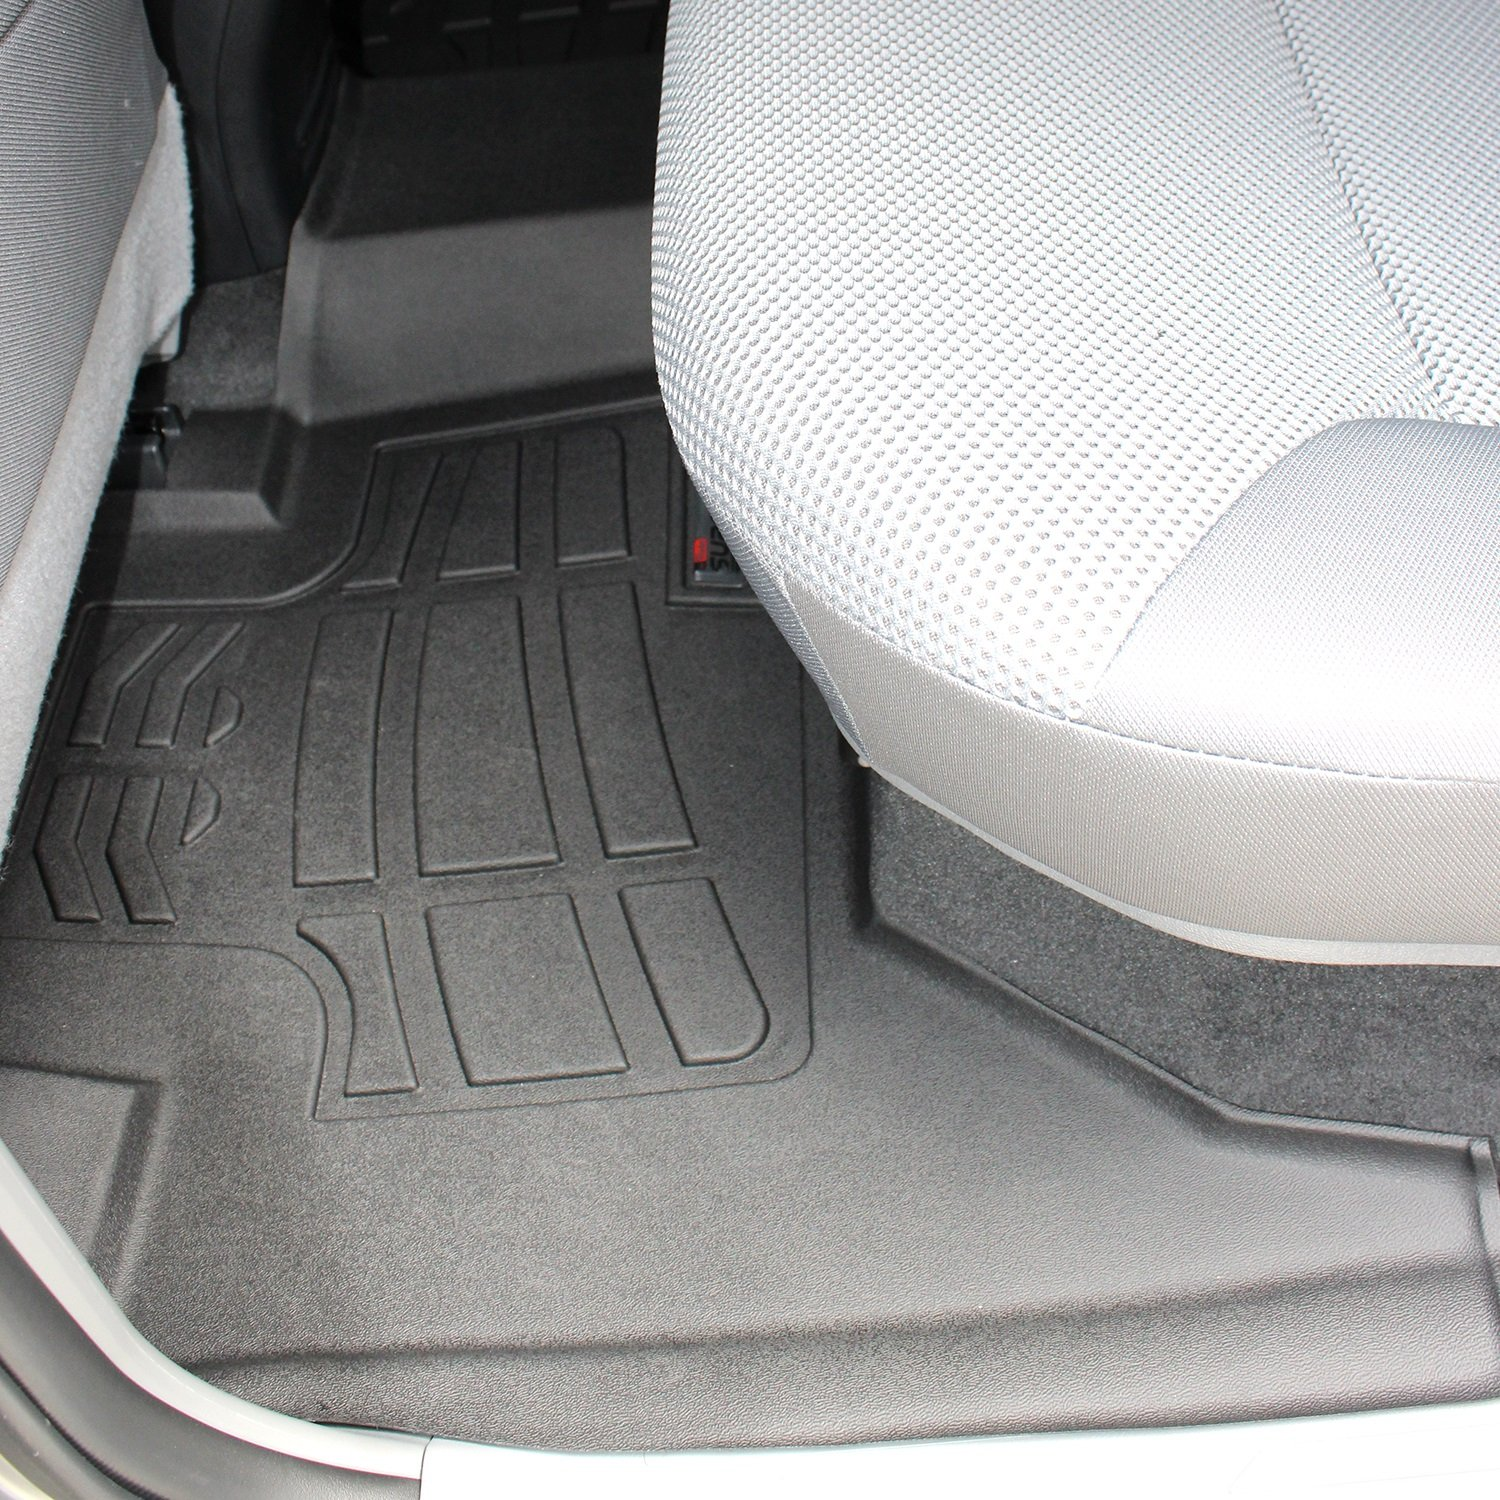 91jHXJk2myL._SL1500_ Take A Look About Challenger Floor Mats with Terrific Pictures Cars Review